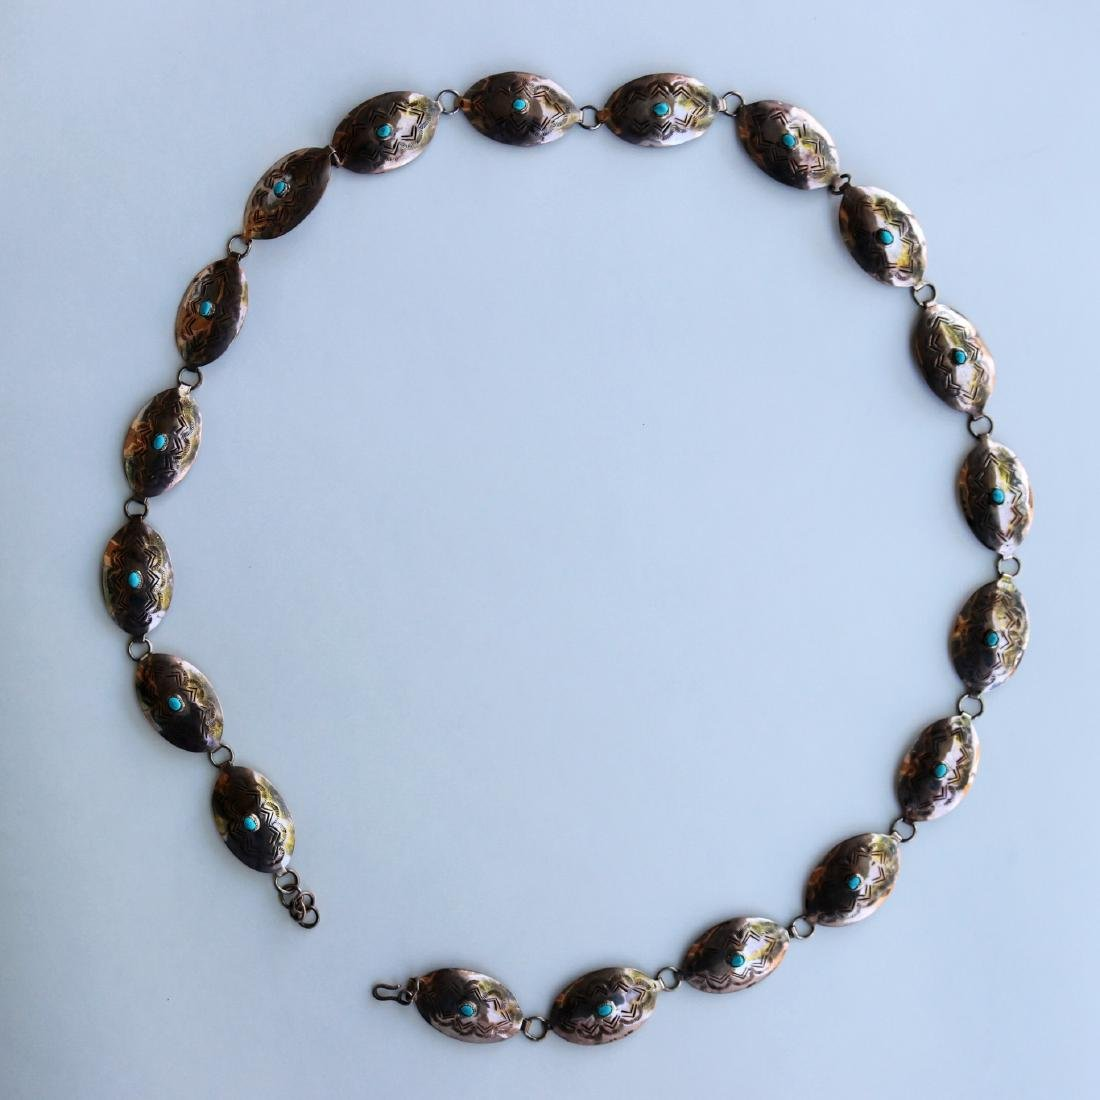 N.G. Silver and Beauty Turquoise Necklace / Belt 100g